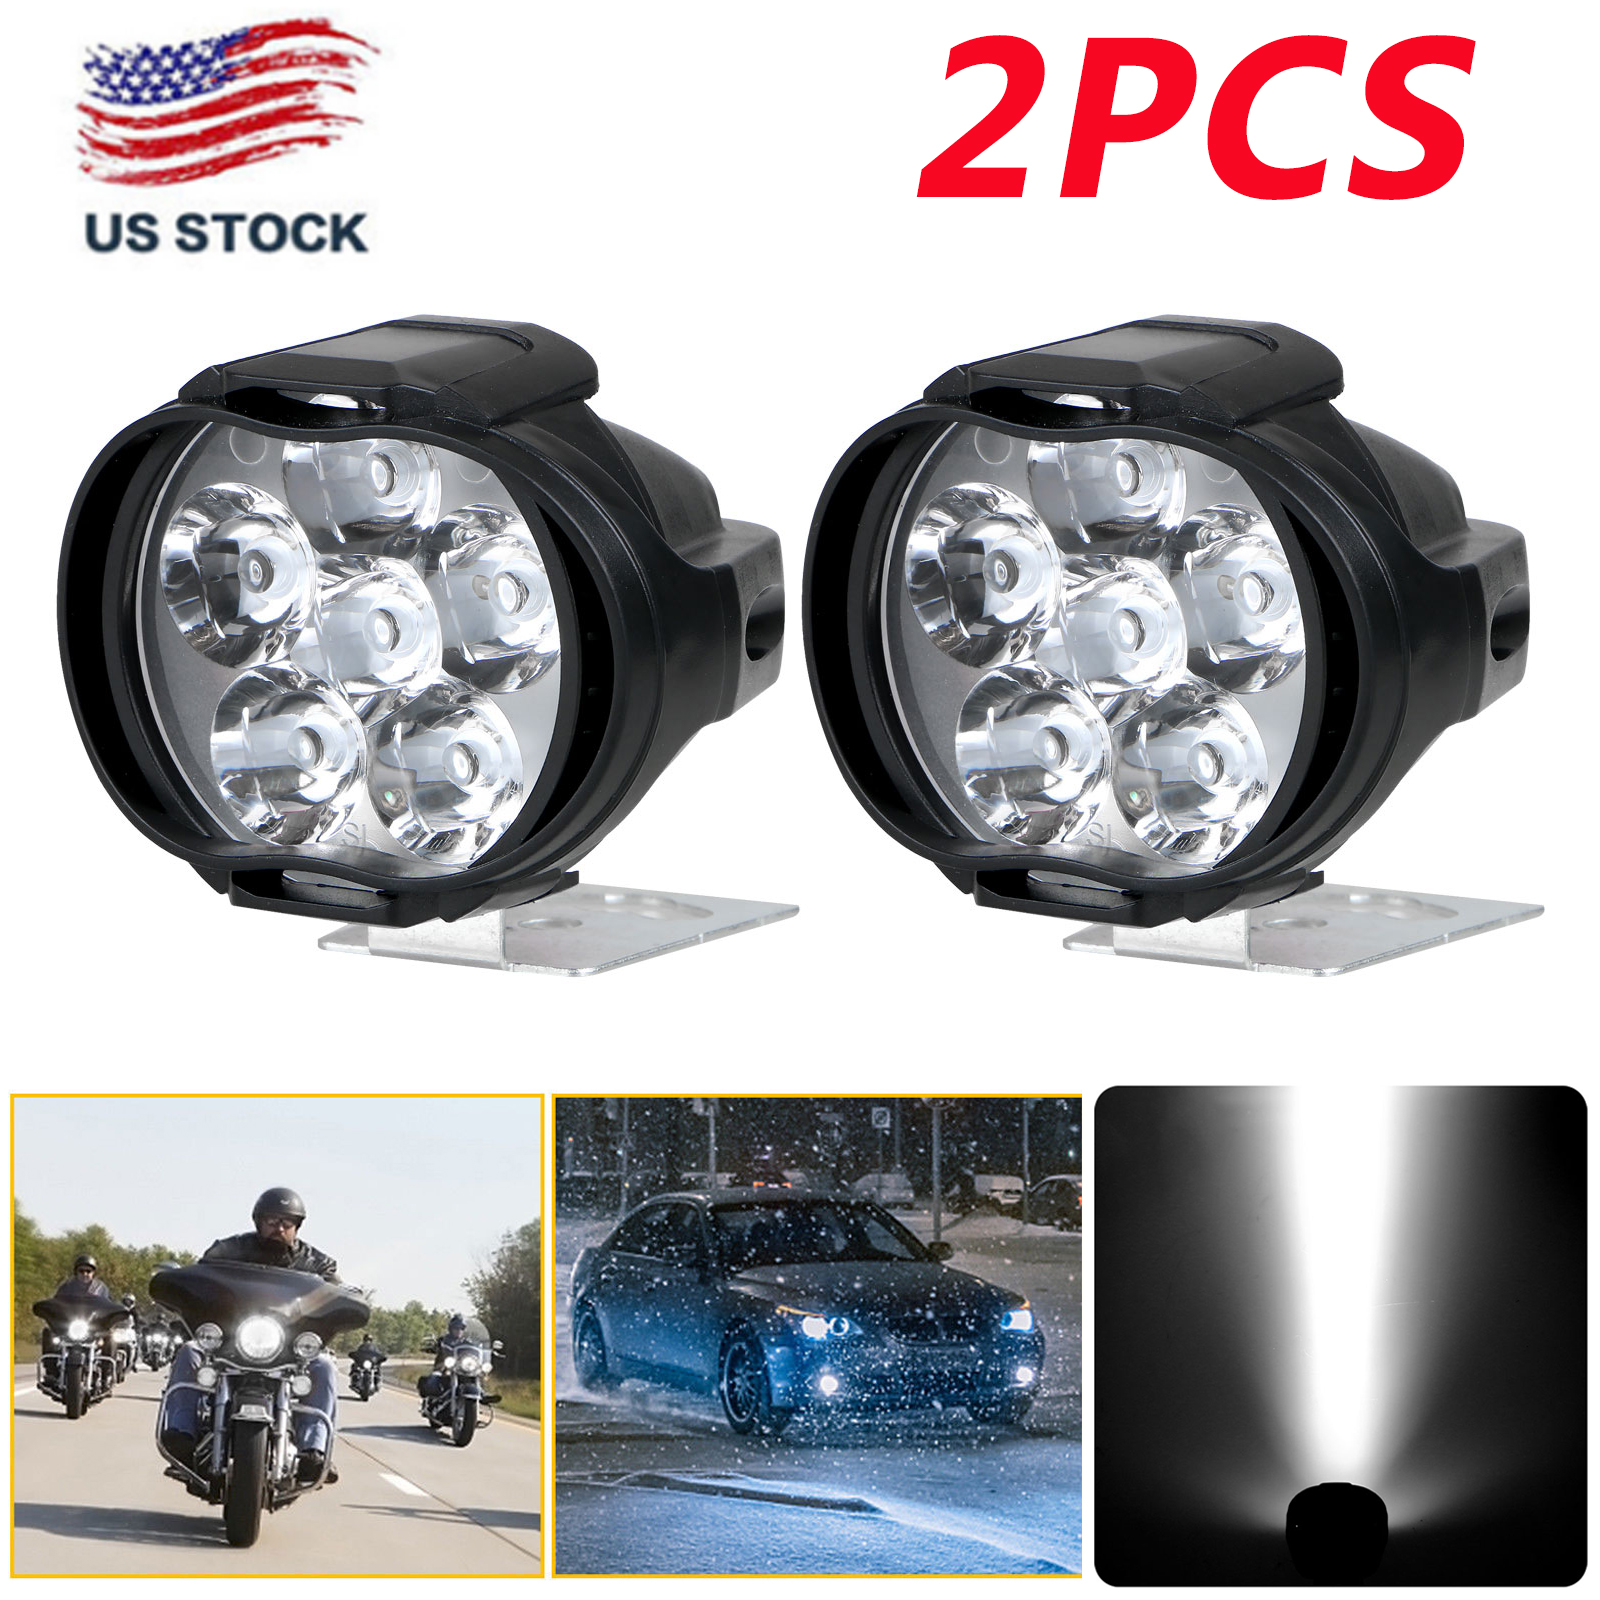 2Pcs-6LED-White-Motorcycle-Headlight-Spot-Light-DRL-Driving-Fog-Lamp-Waterproof thumbnail 11